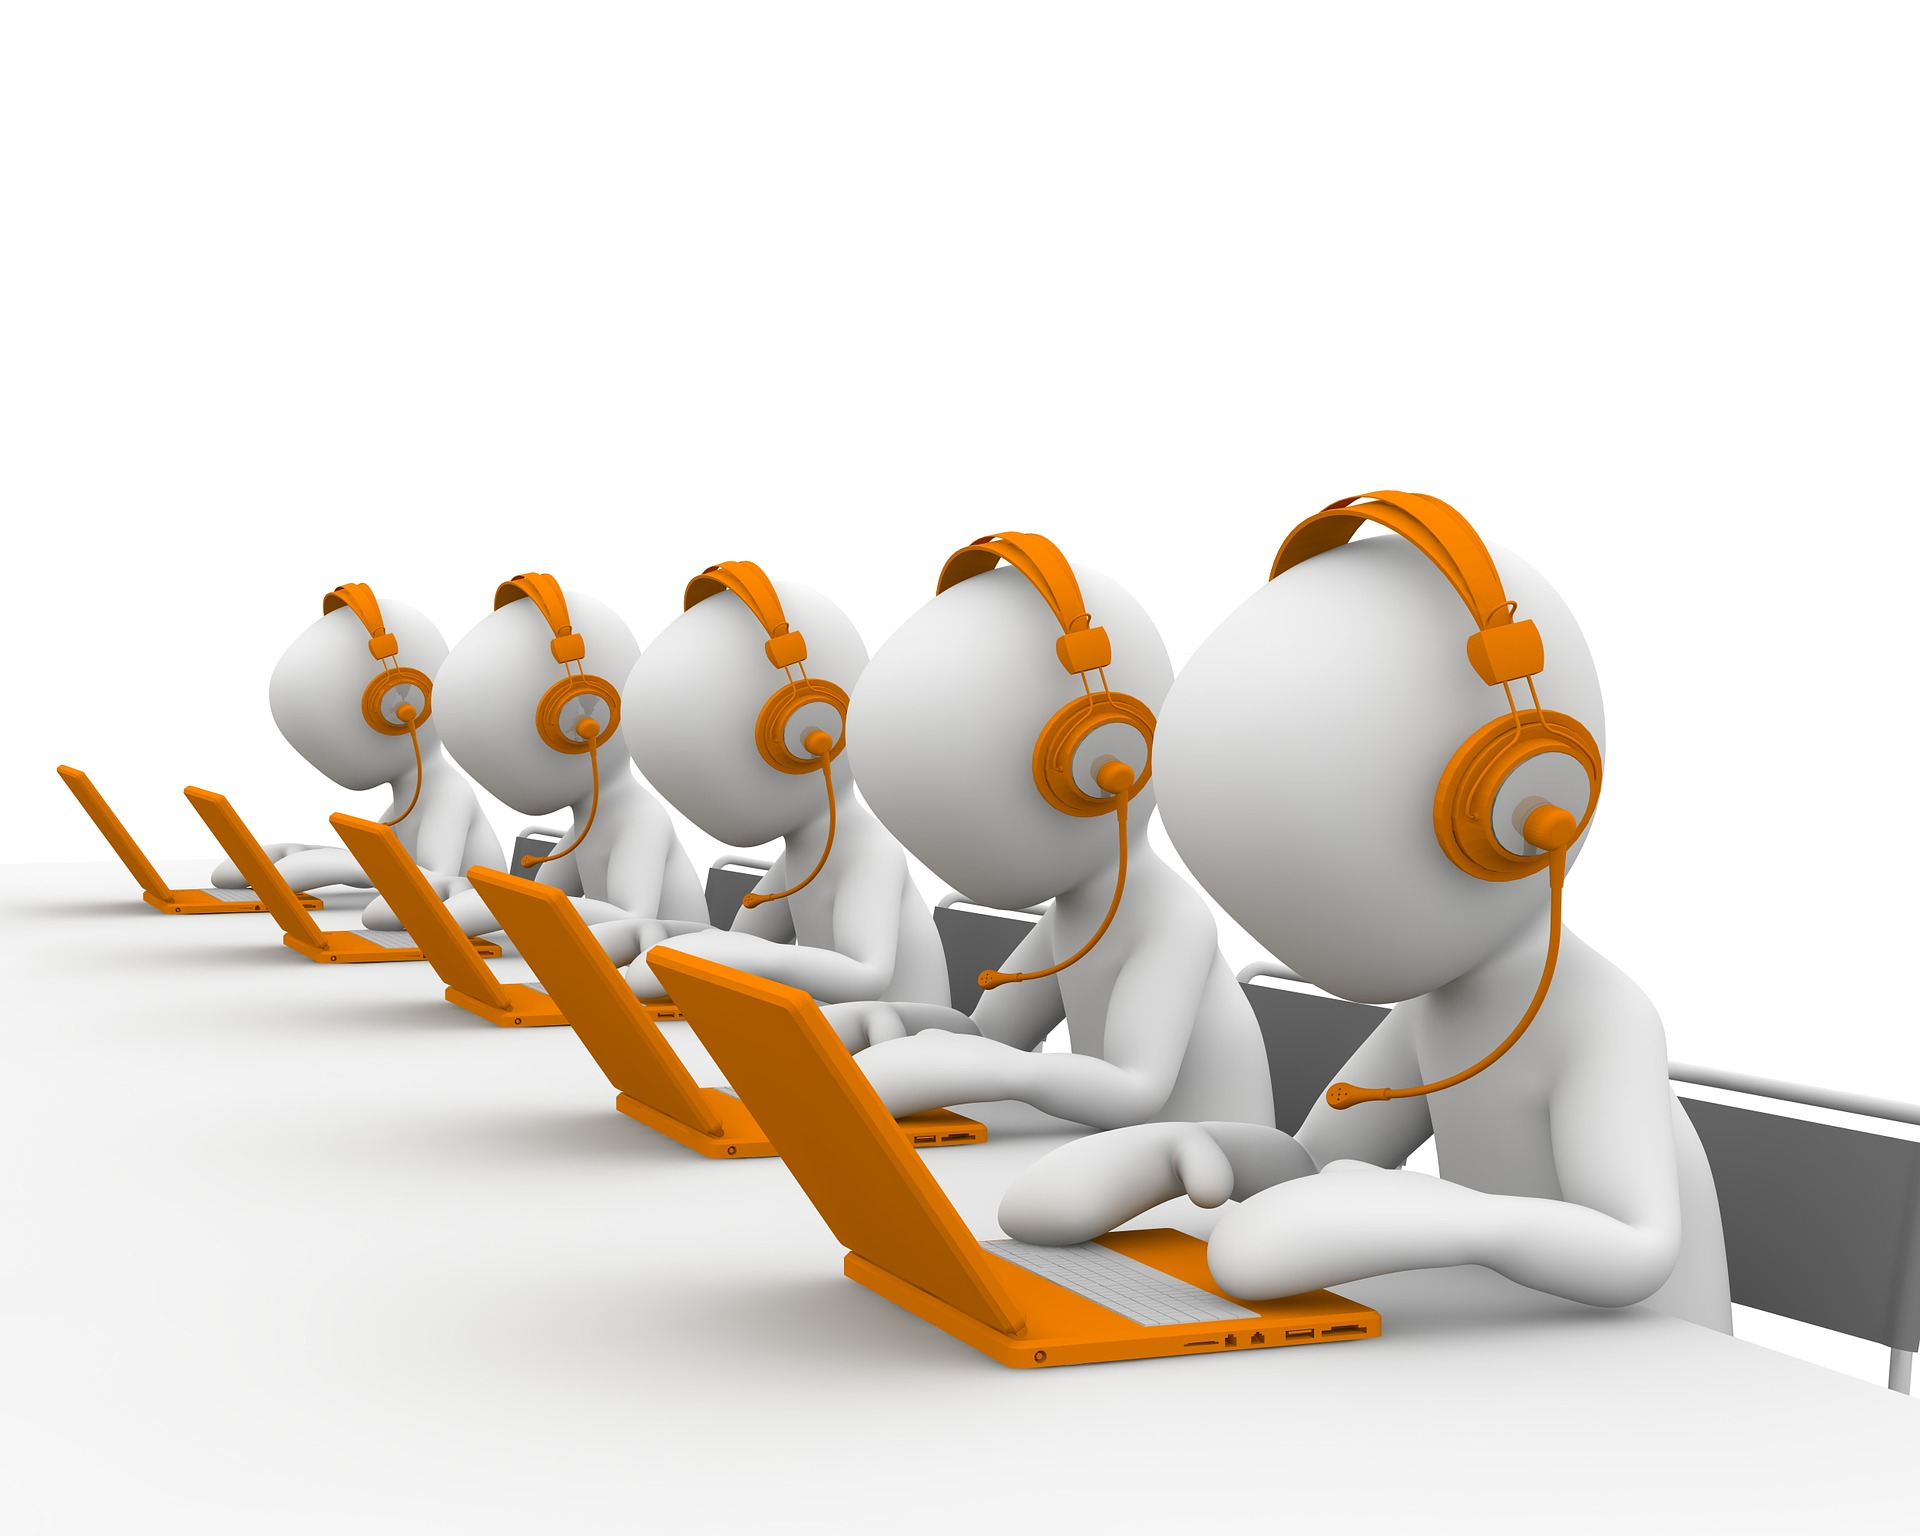 How Should You Avoid Nuisance Calls?